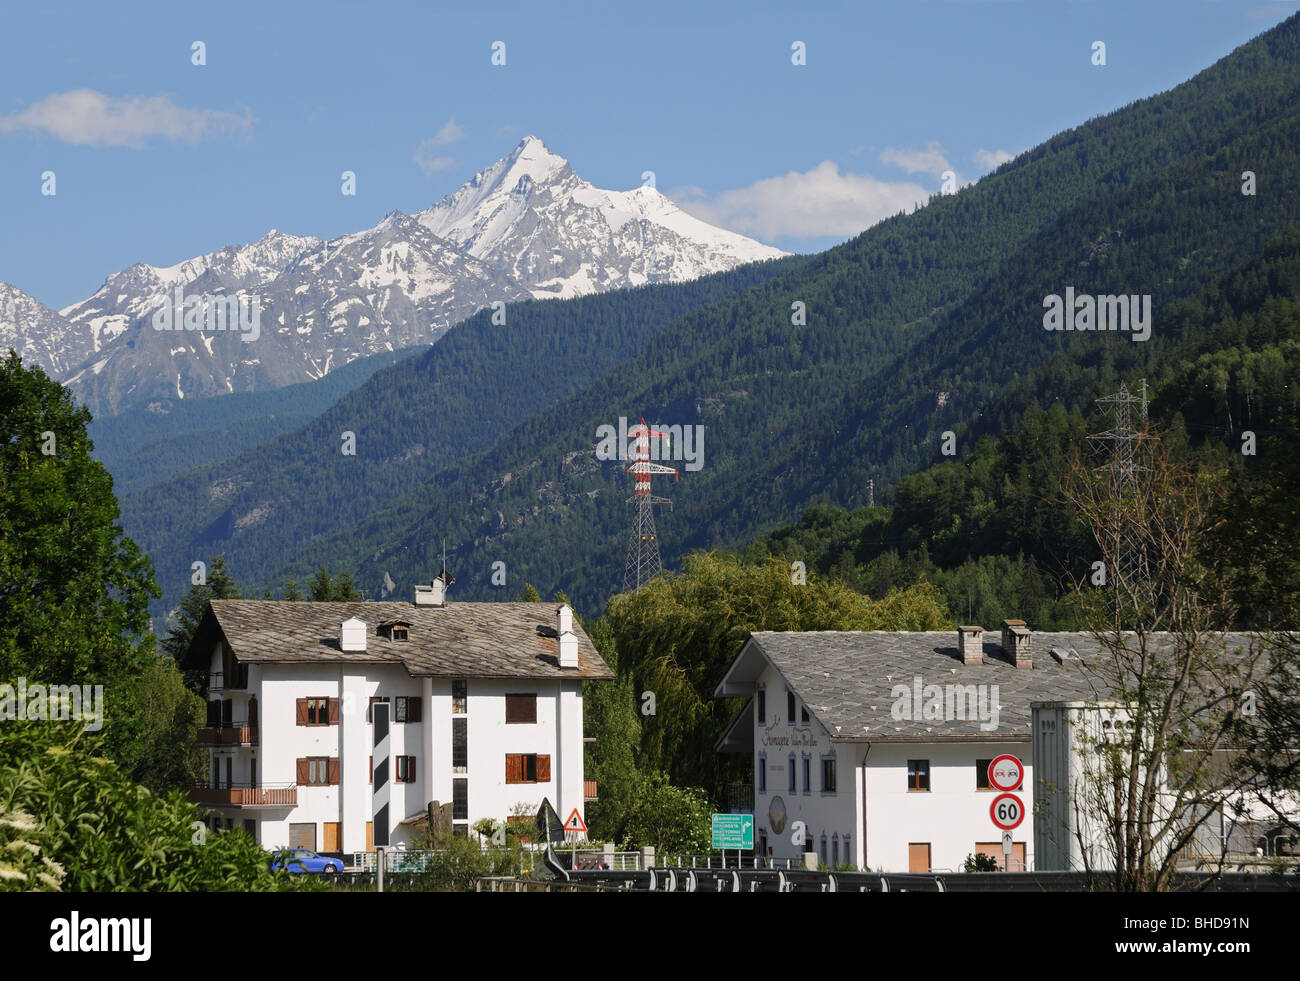 Fromagerie Valdigne Mont Blanc in the Aosta Valley Italy with the snow capped peak of La Grivola in the Gran Paradiso - Stock Image